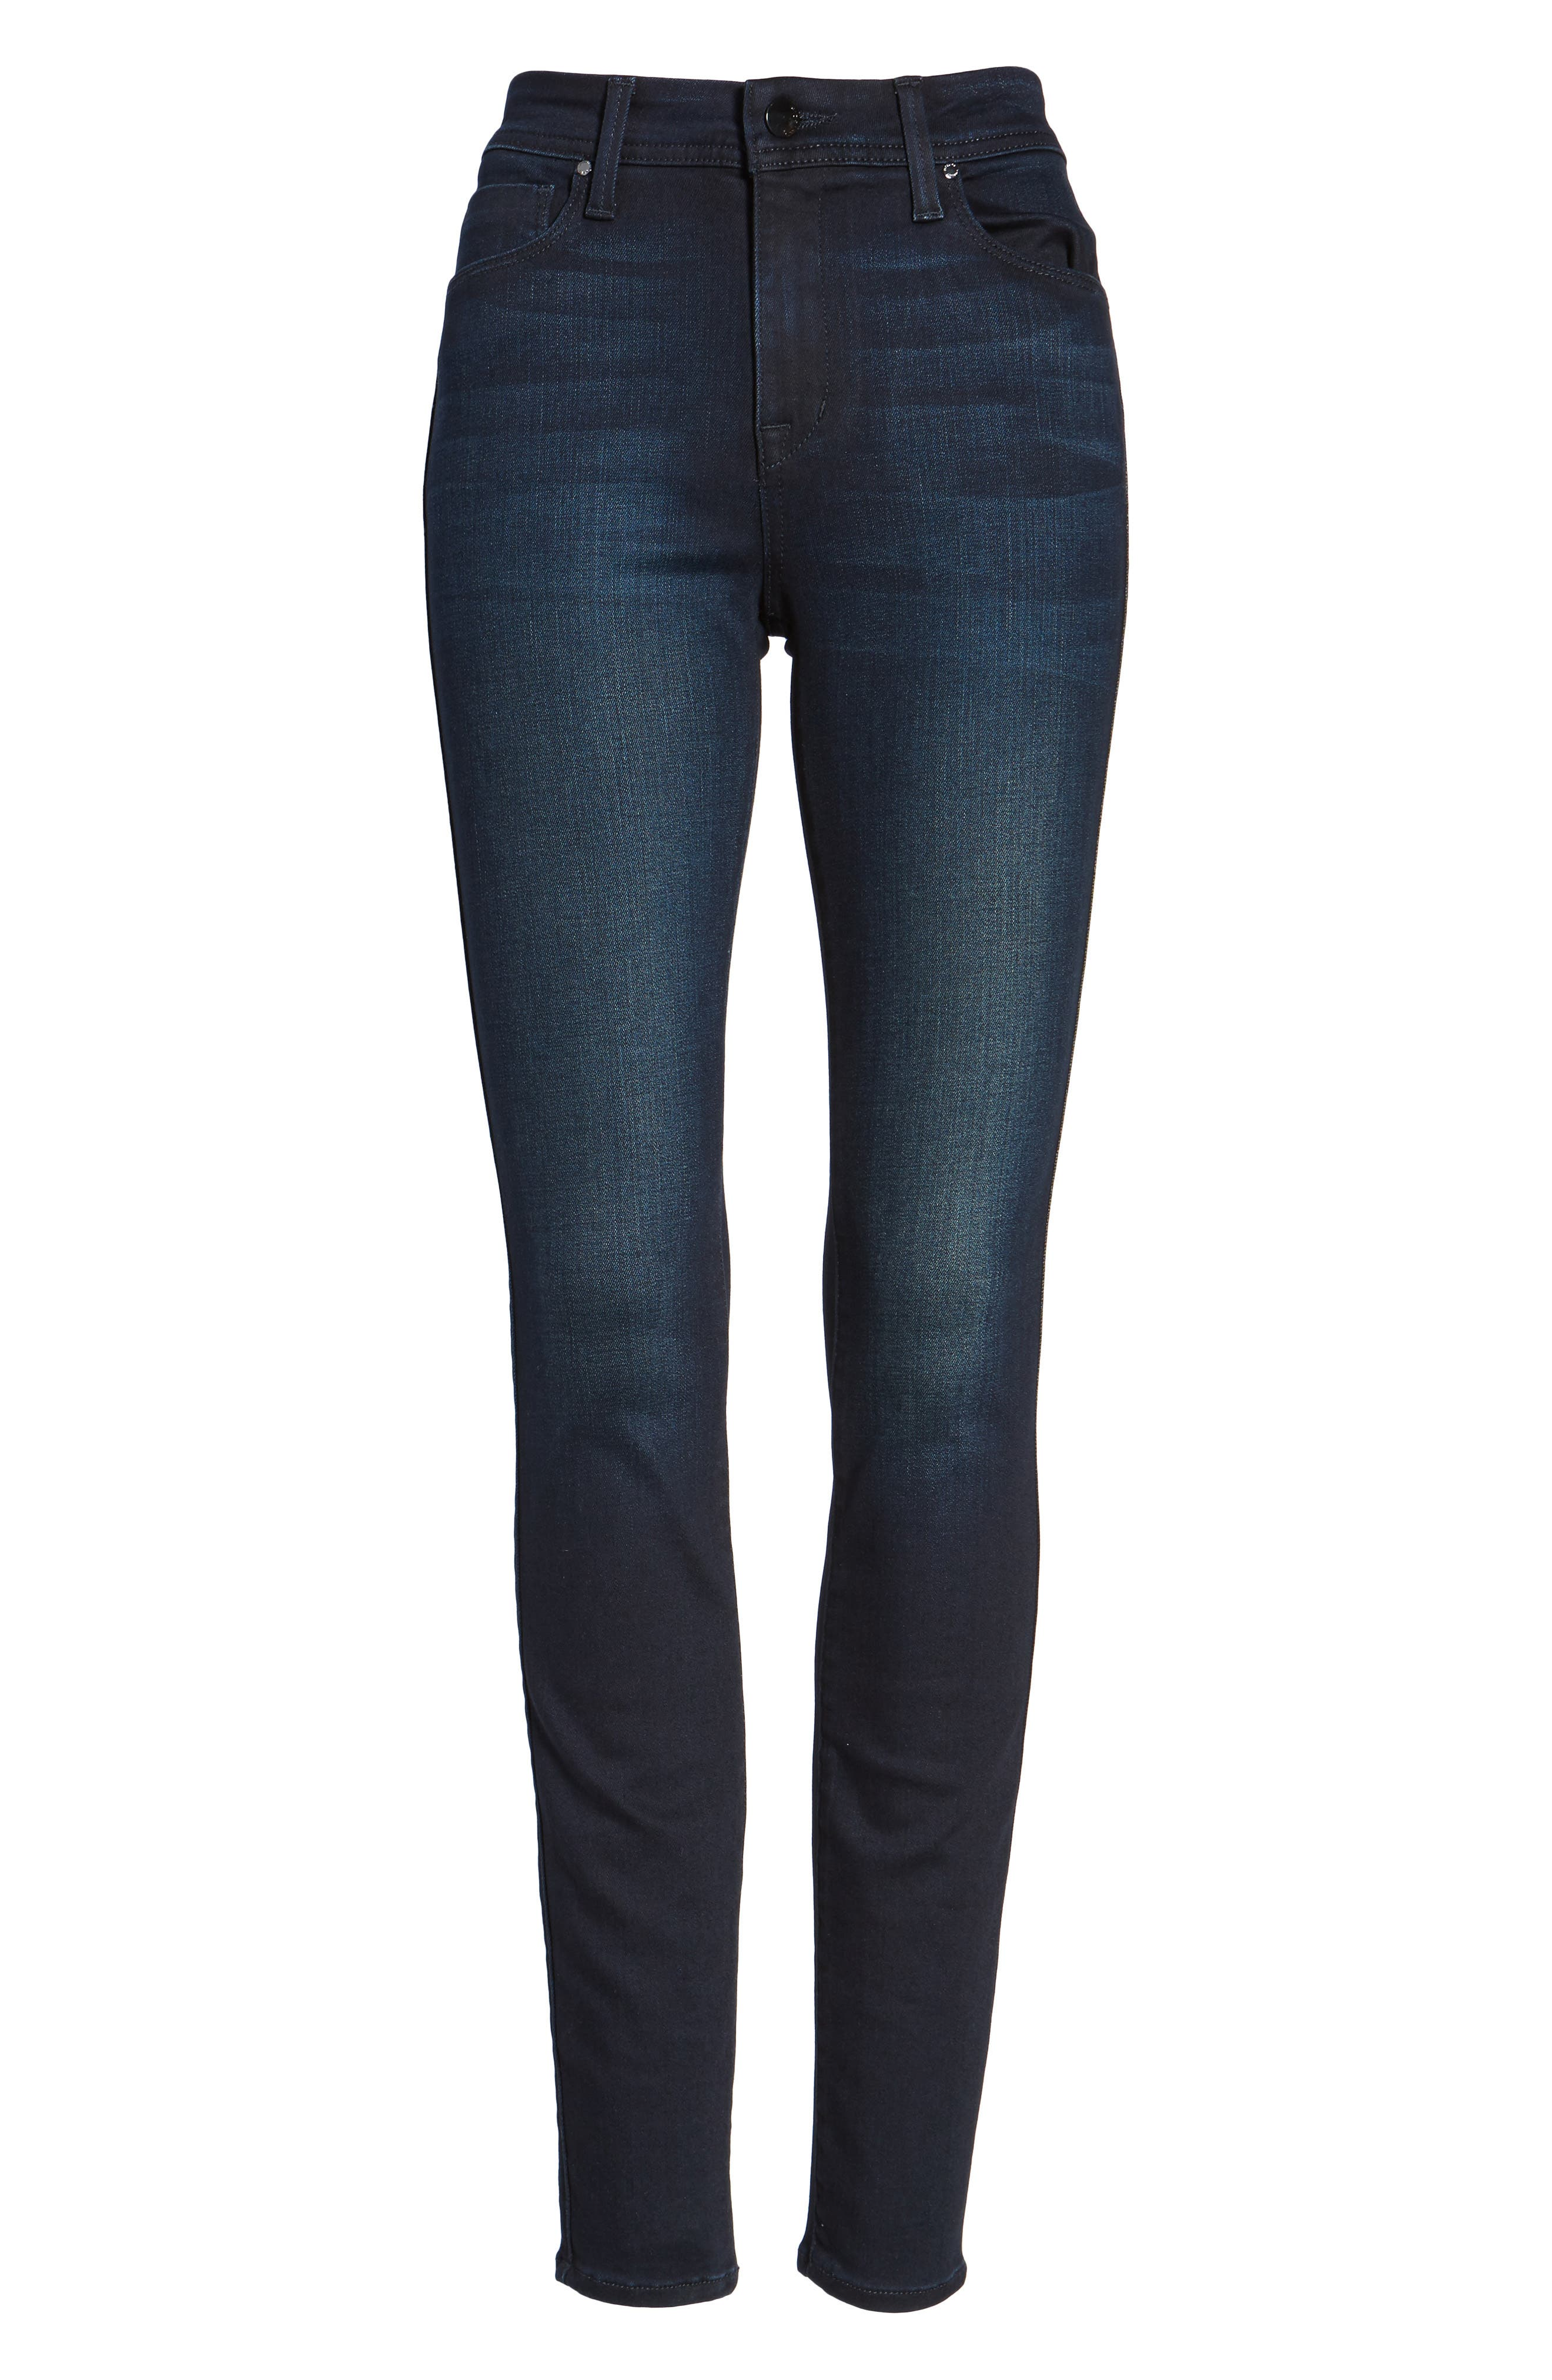 Fidelity Jeans Belvedere Skinny Jeans,                             Alternate thumbnail 6, color,                             Sapphire